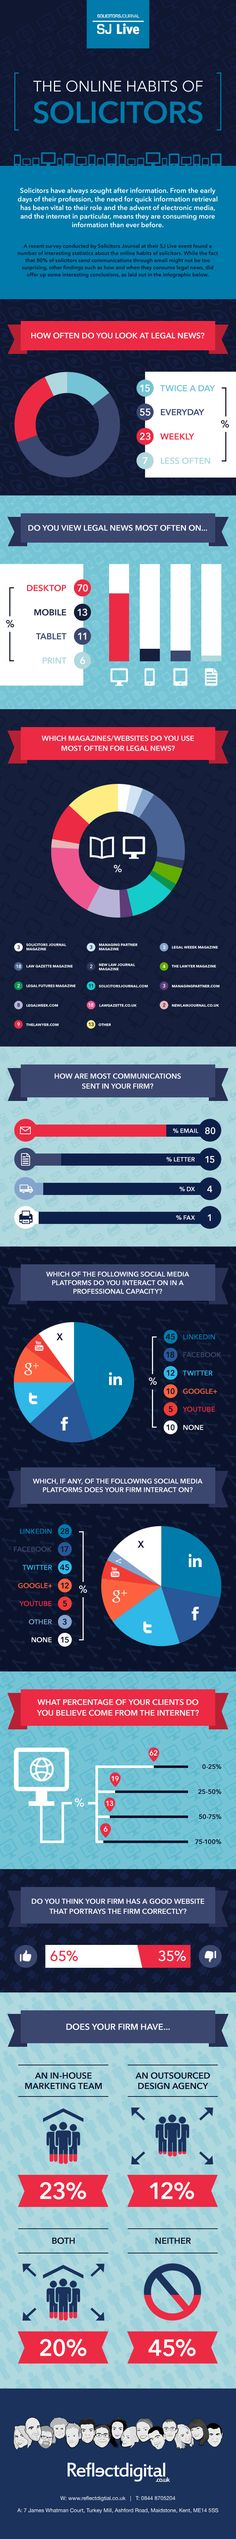 Together with the legal news magazine Solicitors Journal we have made this infographic look at the results of a recent legal survey which took place and the law conference SJ live. Lawyers were asked about their online habits to do with their law firm and their personal usage. To find out more legal news visit their website where you can find more legal new on conveyancing, SRA news and compliance new, alternative business structures and more. http://www.solicitorsjournal.com/